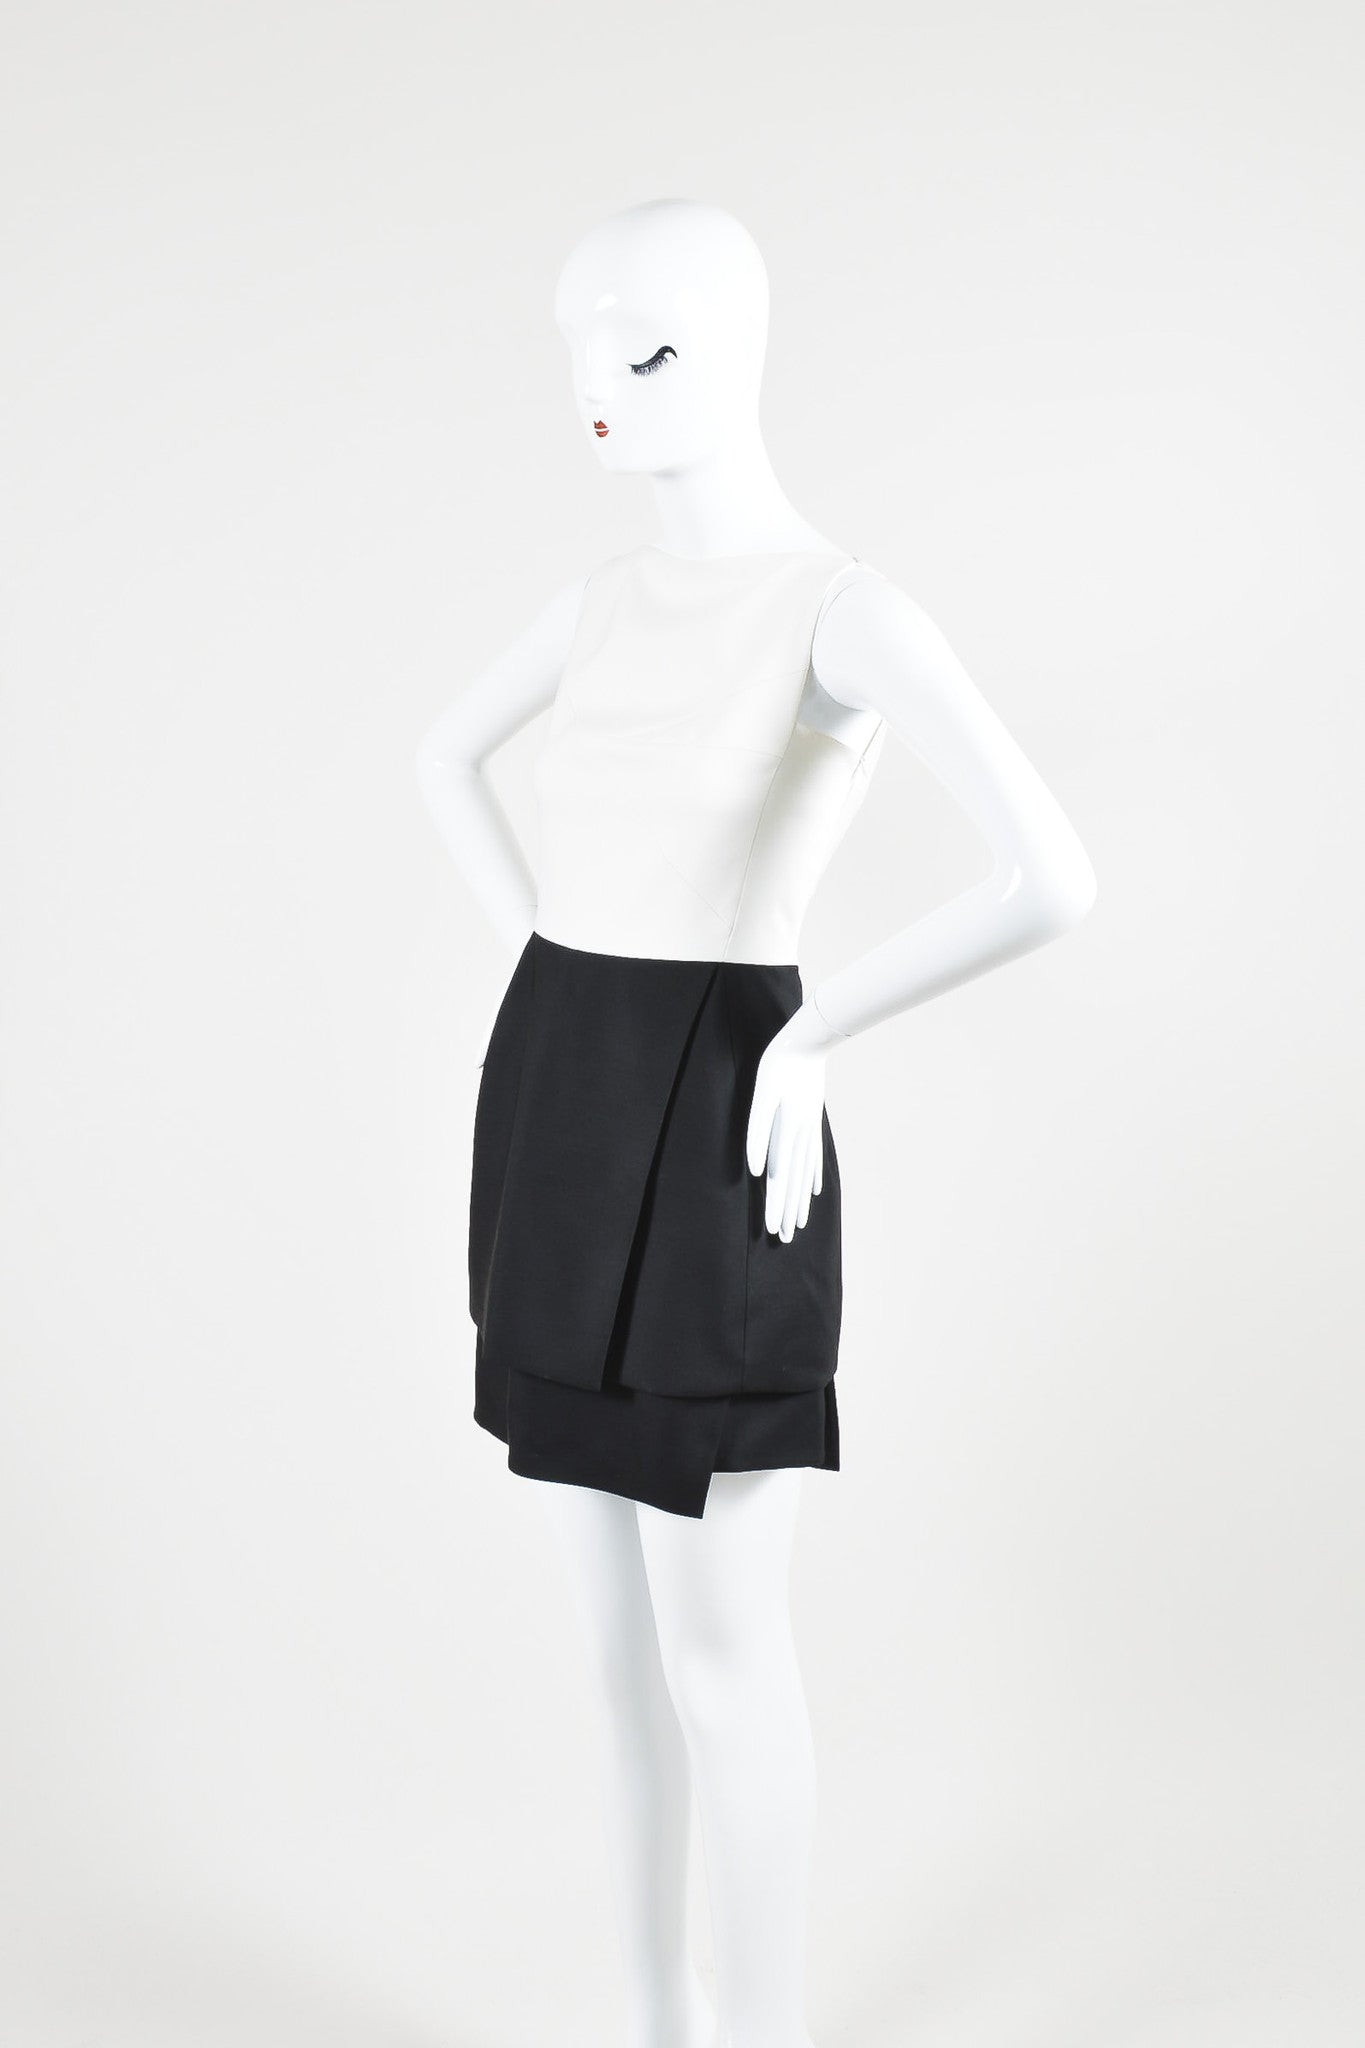 Narciso Rodriquez Black and White Wool and Silk Color Block Layered Dress Sideview